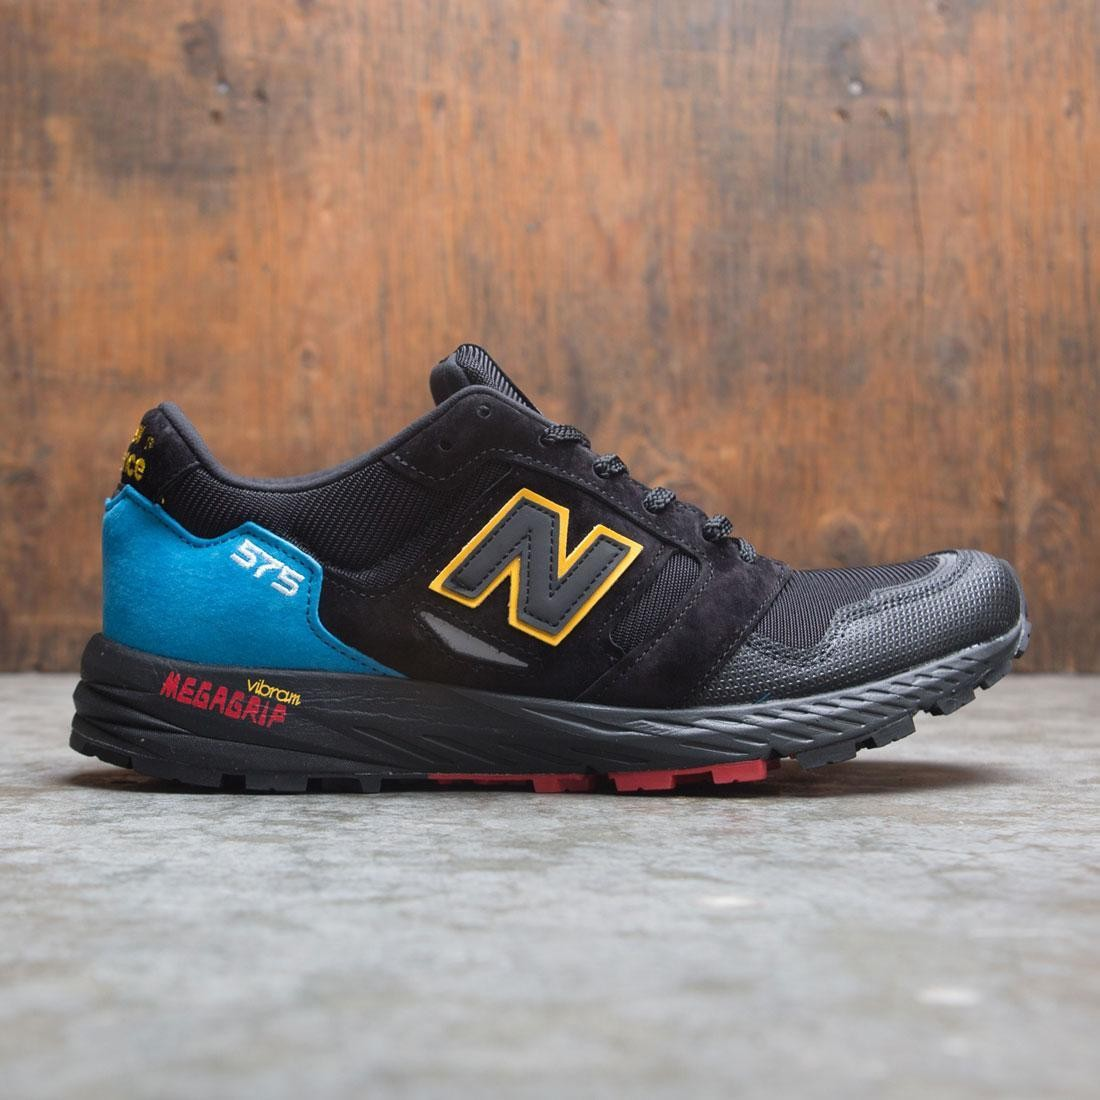 mode designer c15f5 3933e New Balance Men 575 MTL575UT - Made In UK (black / bright blue)